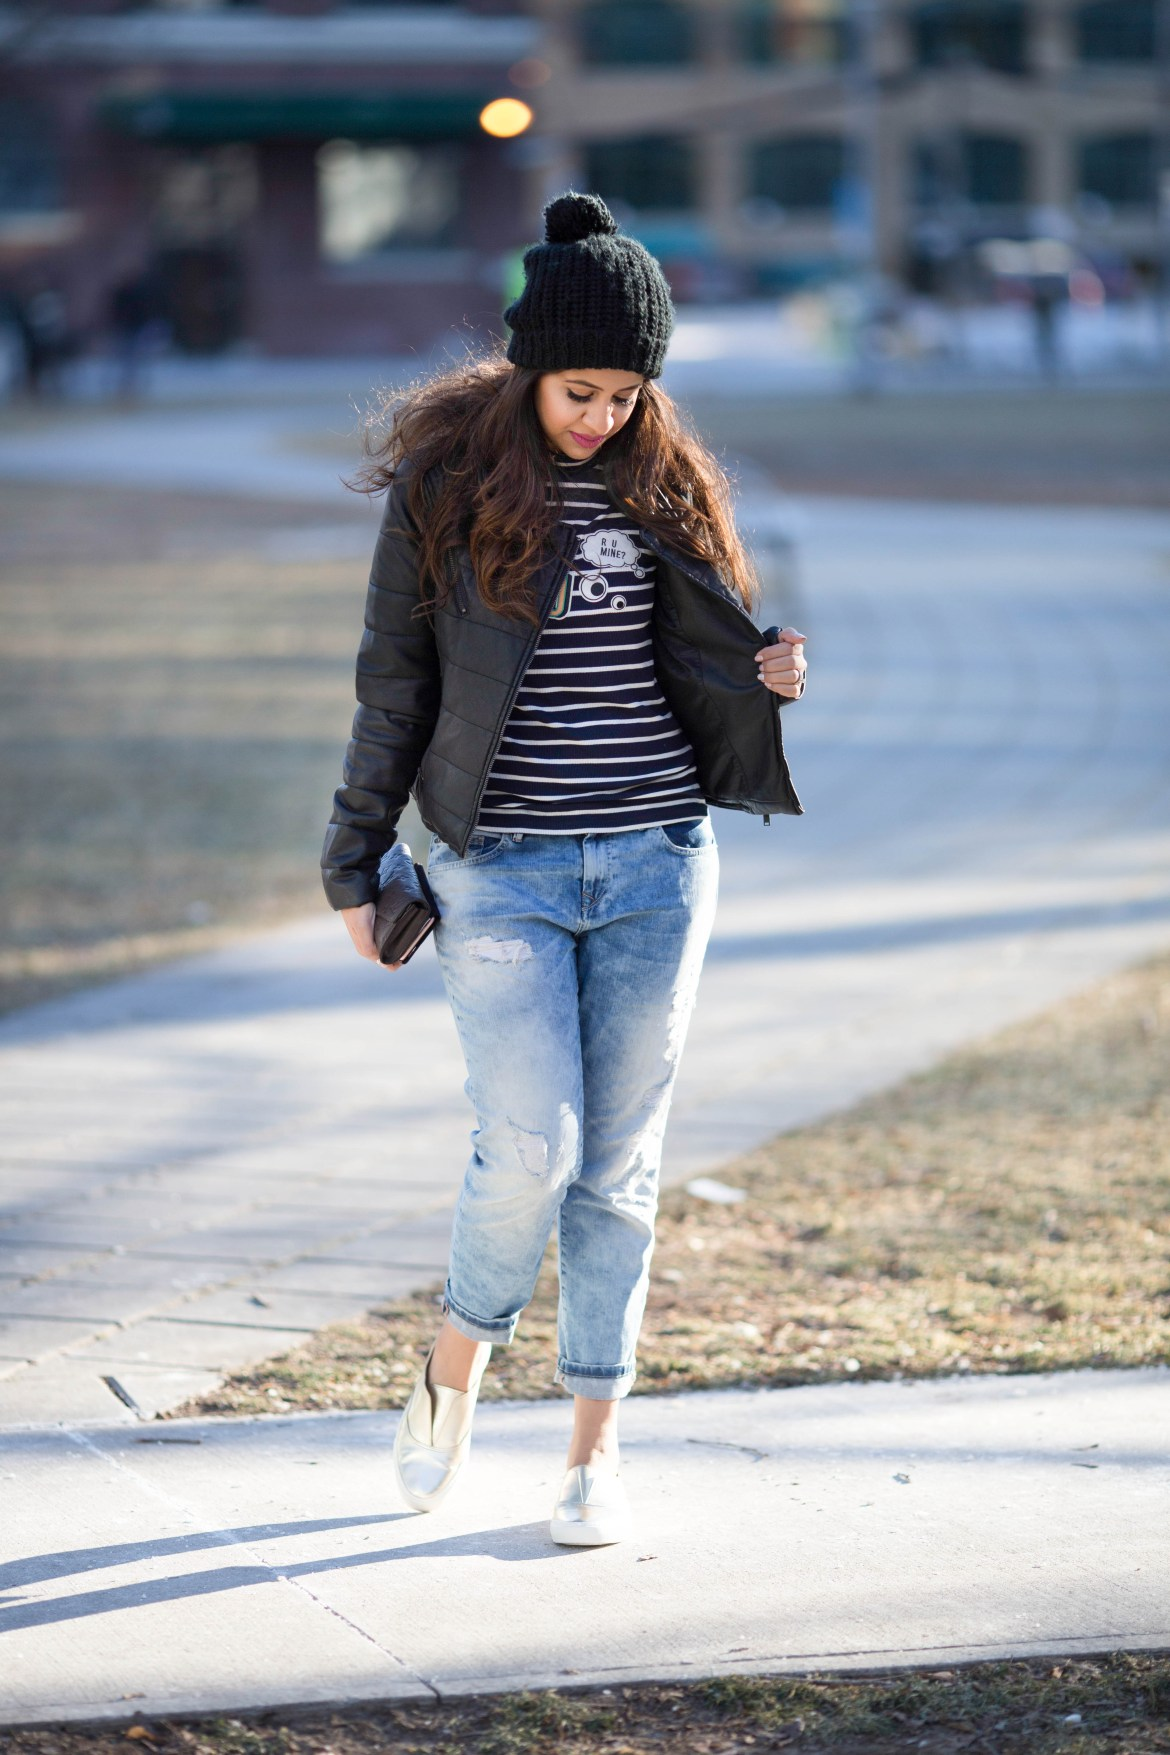 effortless-chic-biker-jacket-casual-boyfriend-jeans-striped-sneakers-zara-mendocino-louisvuitton-2